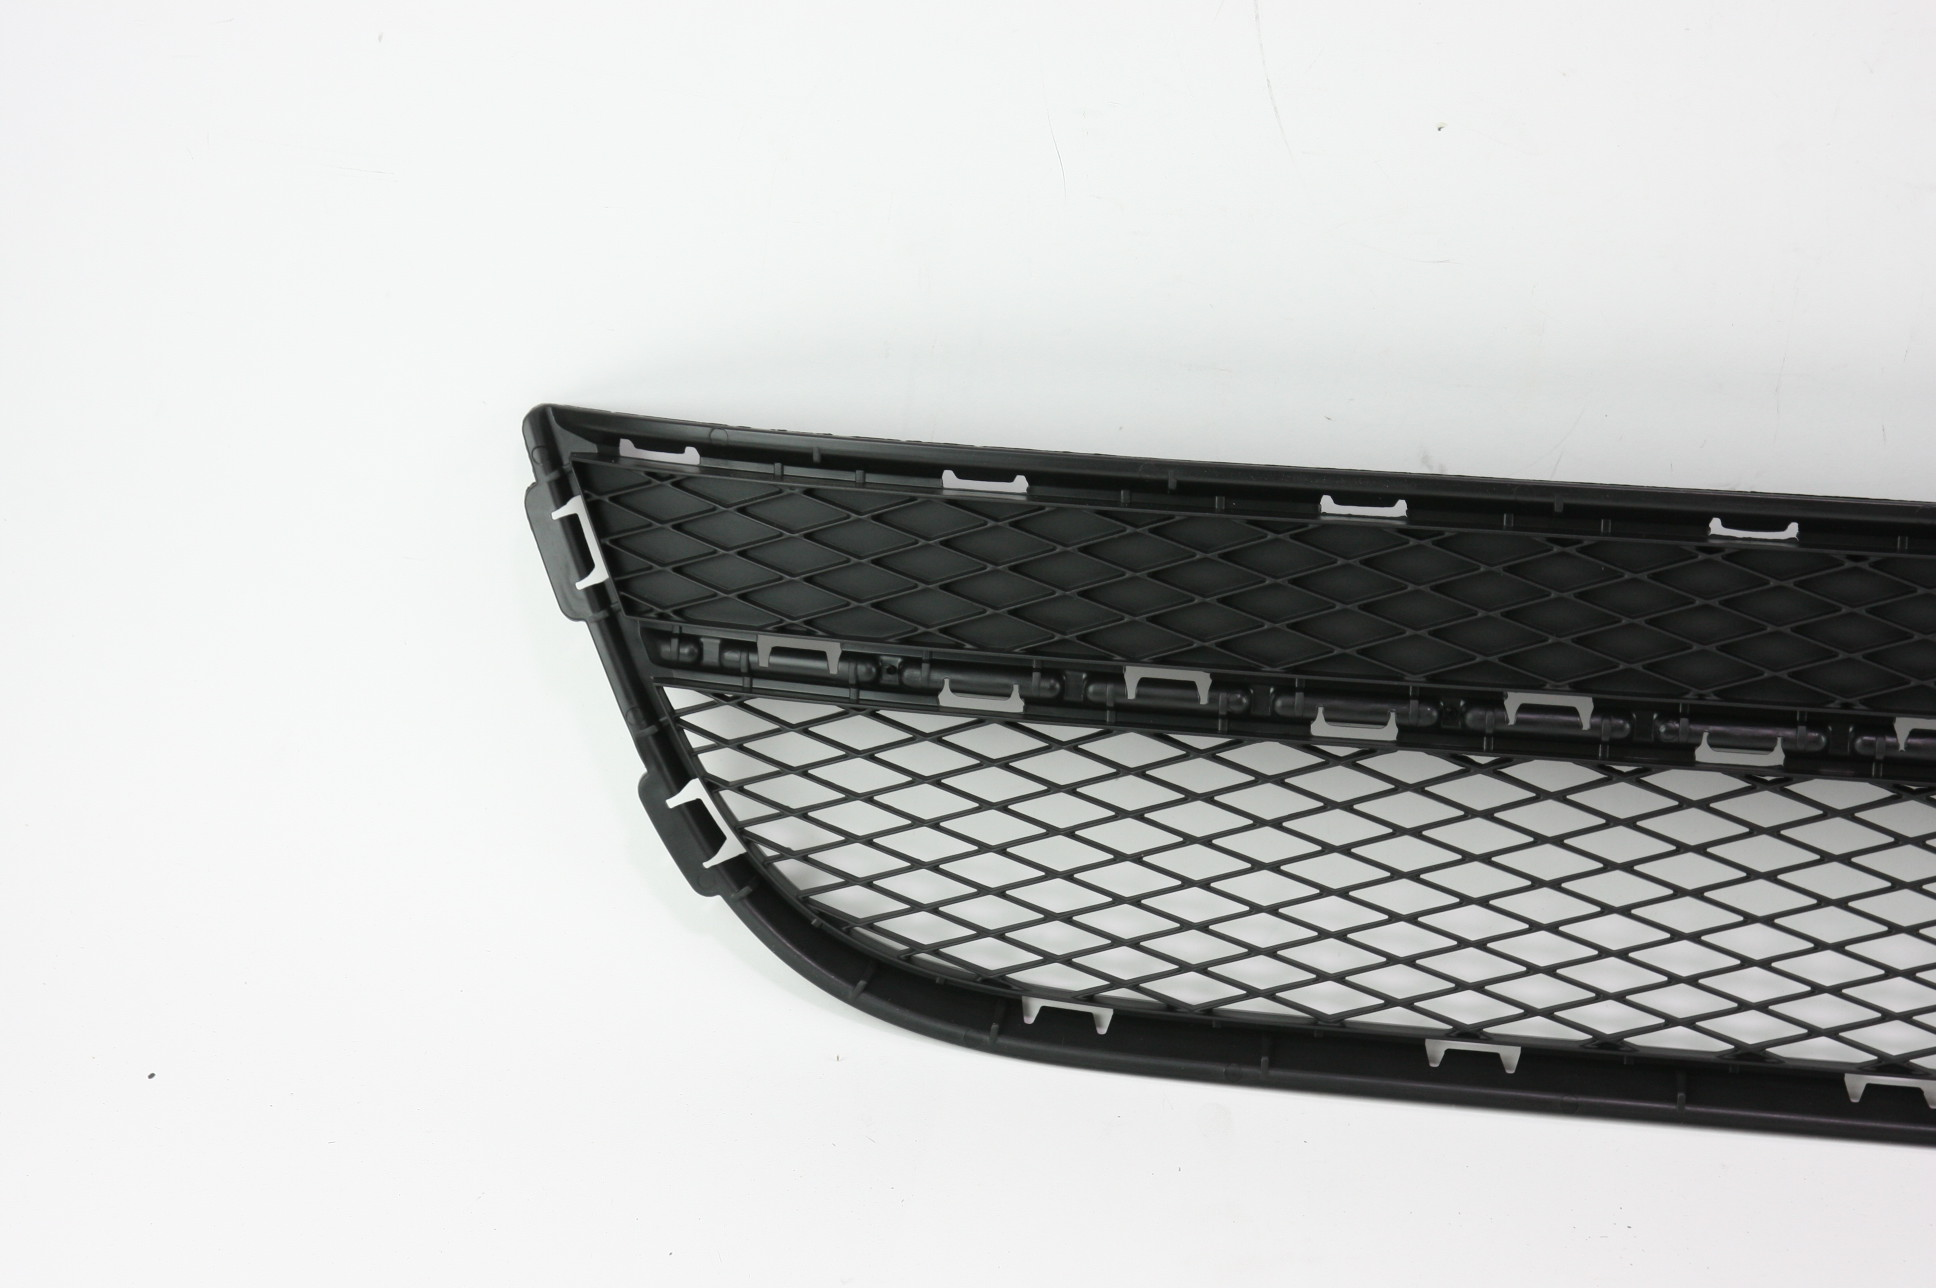 New OEM 5N08536779B9 Volkswagen VW Tiguan Front Bumper Lower Bottom Grille Grill - image 3